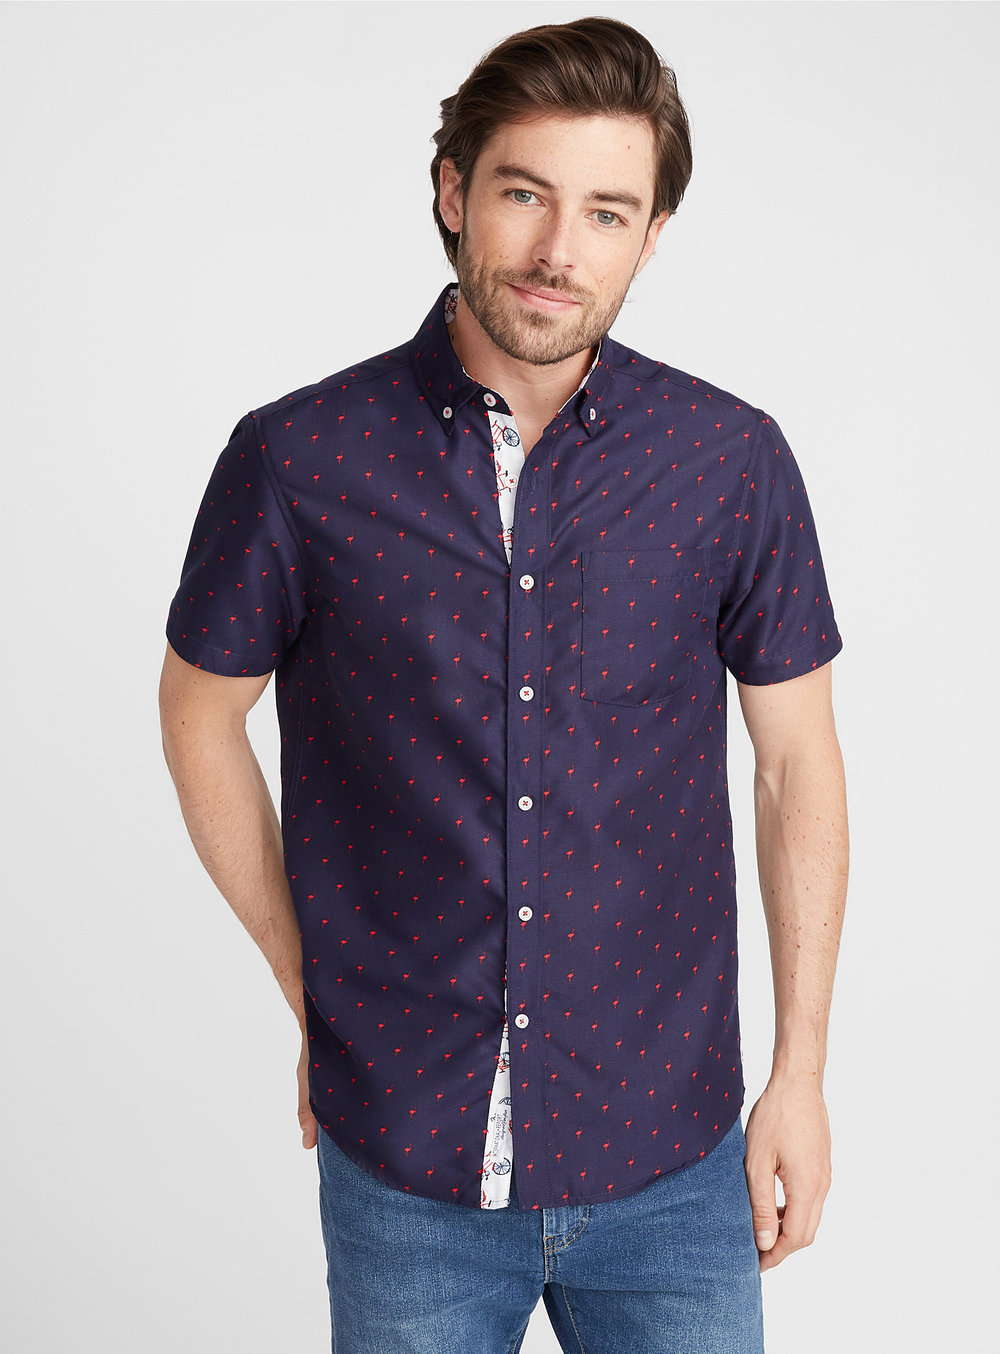 Mens Polka Dot Shirt.jpg